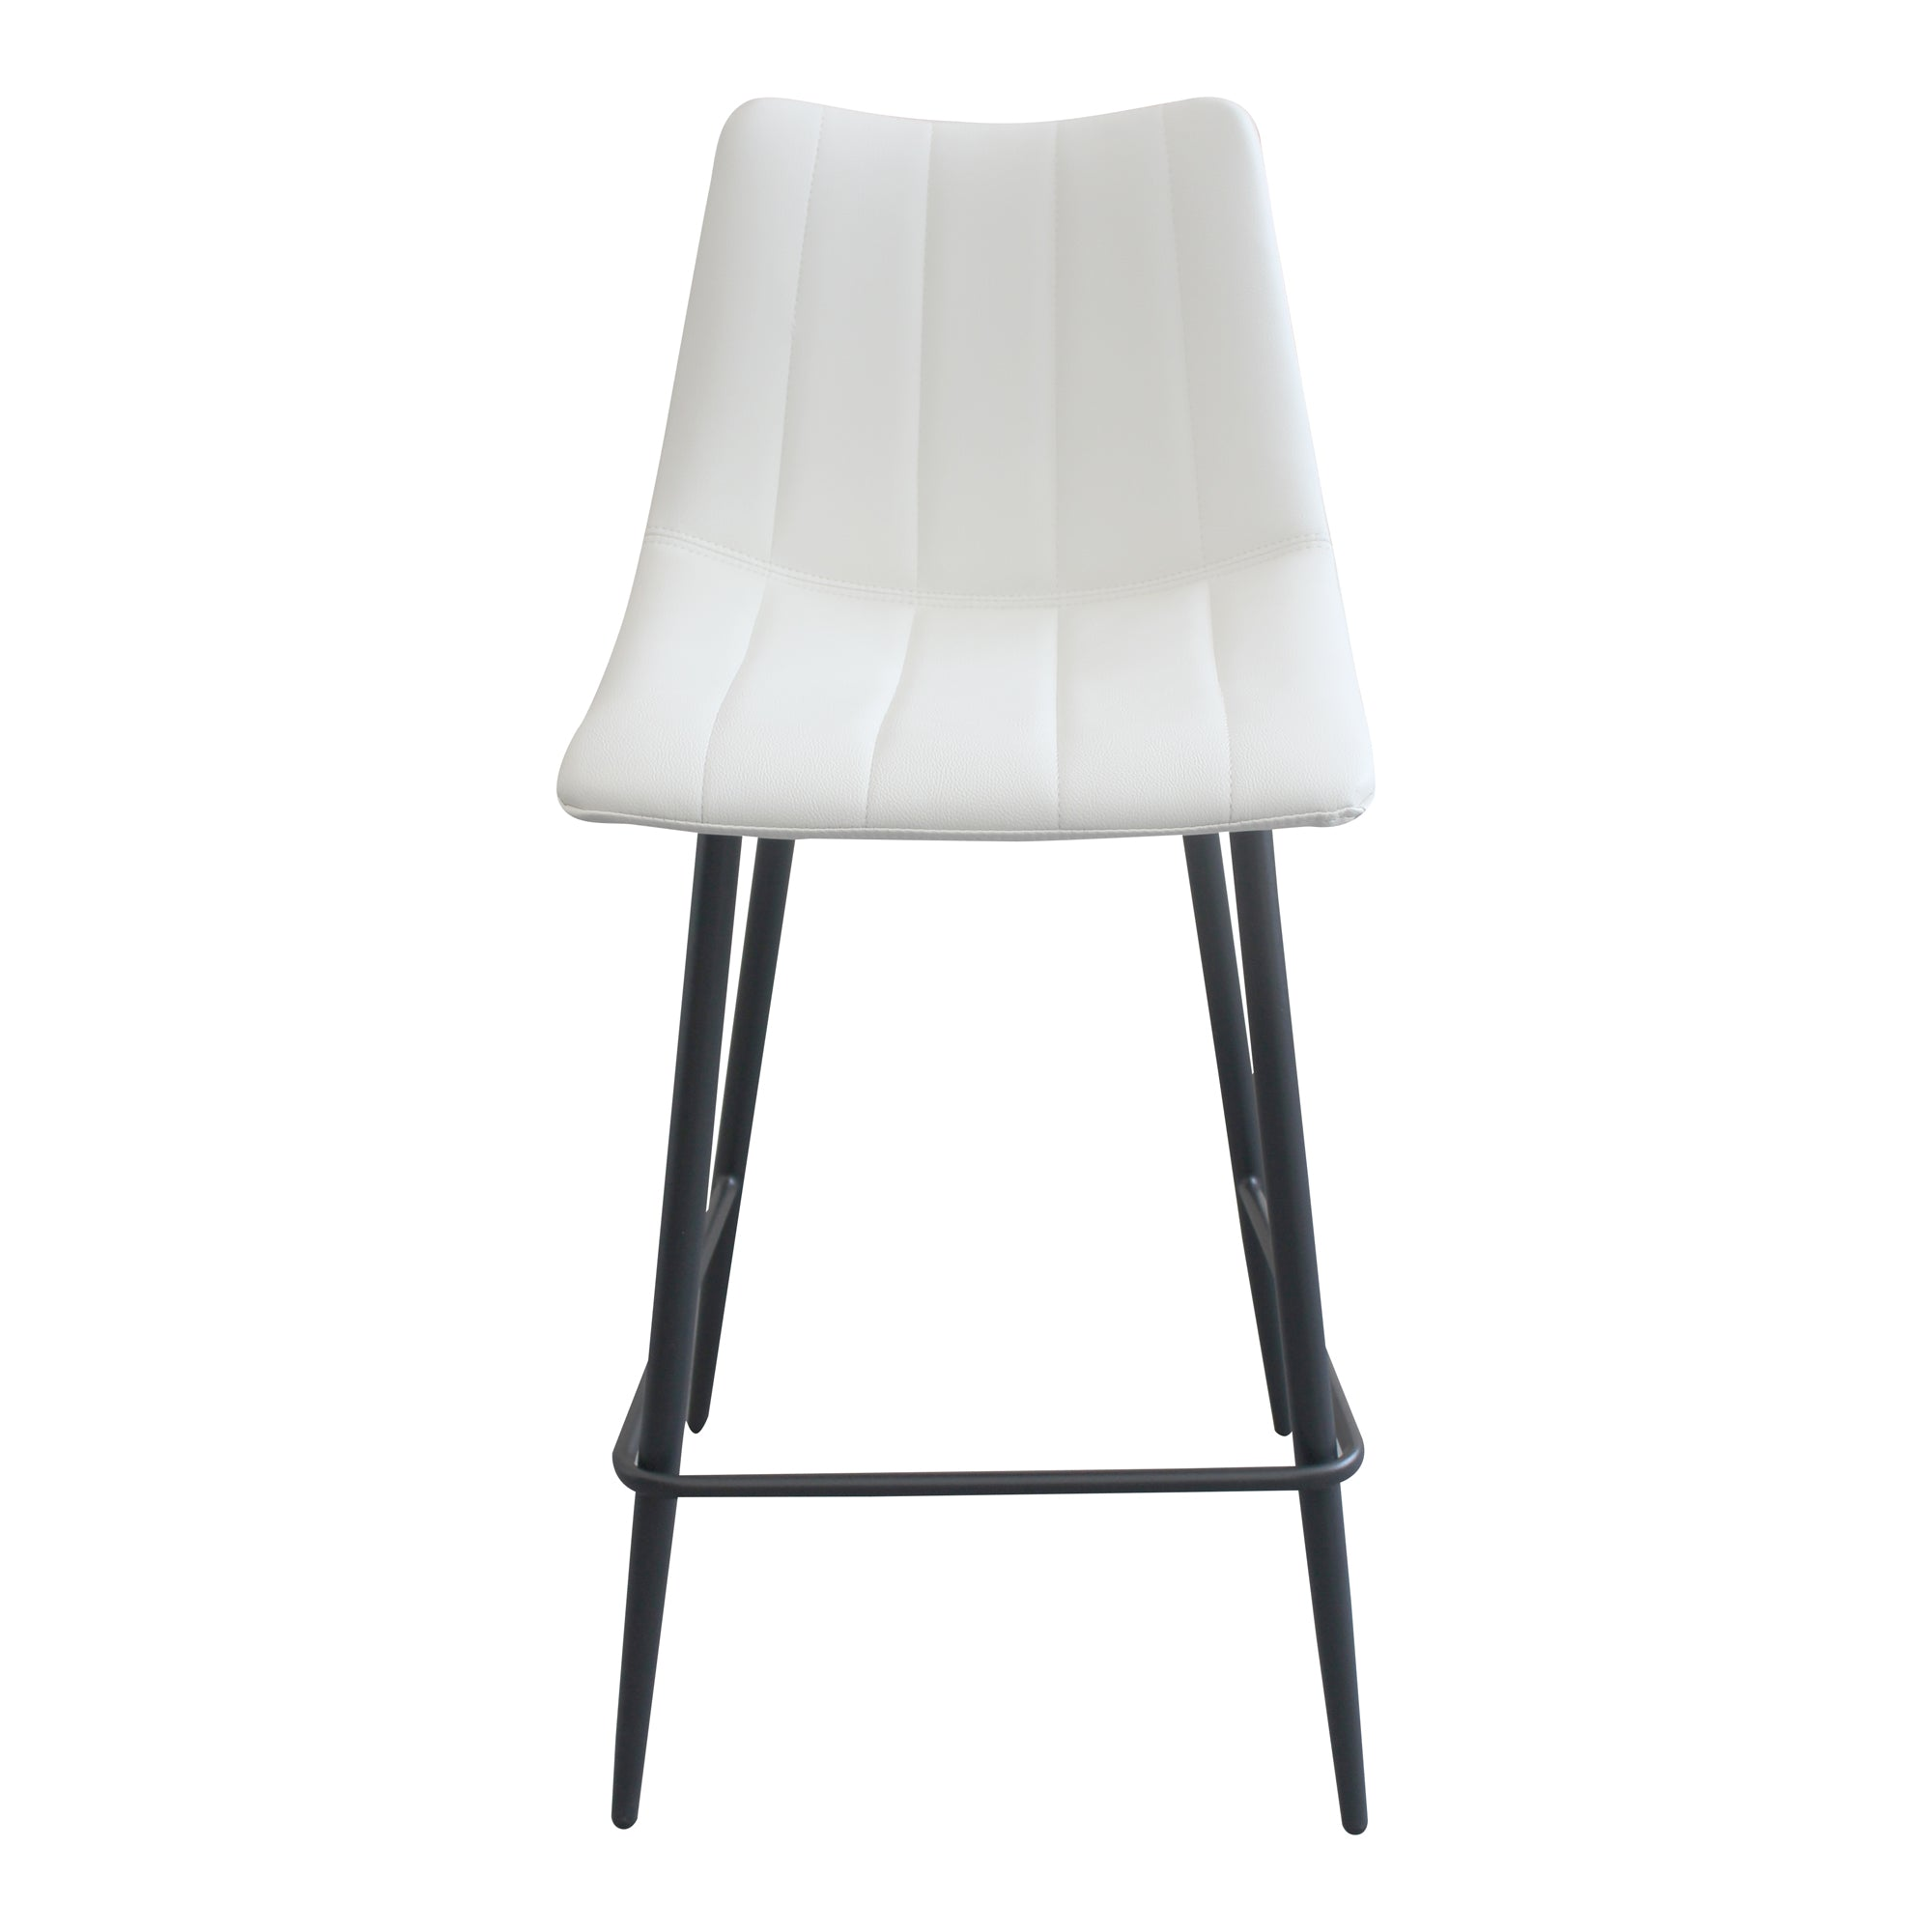 ALIBI COUNTER STOOL, White - Tops-Dress